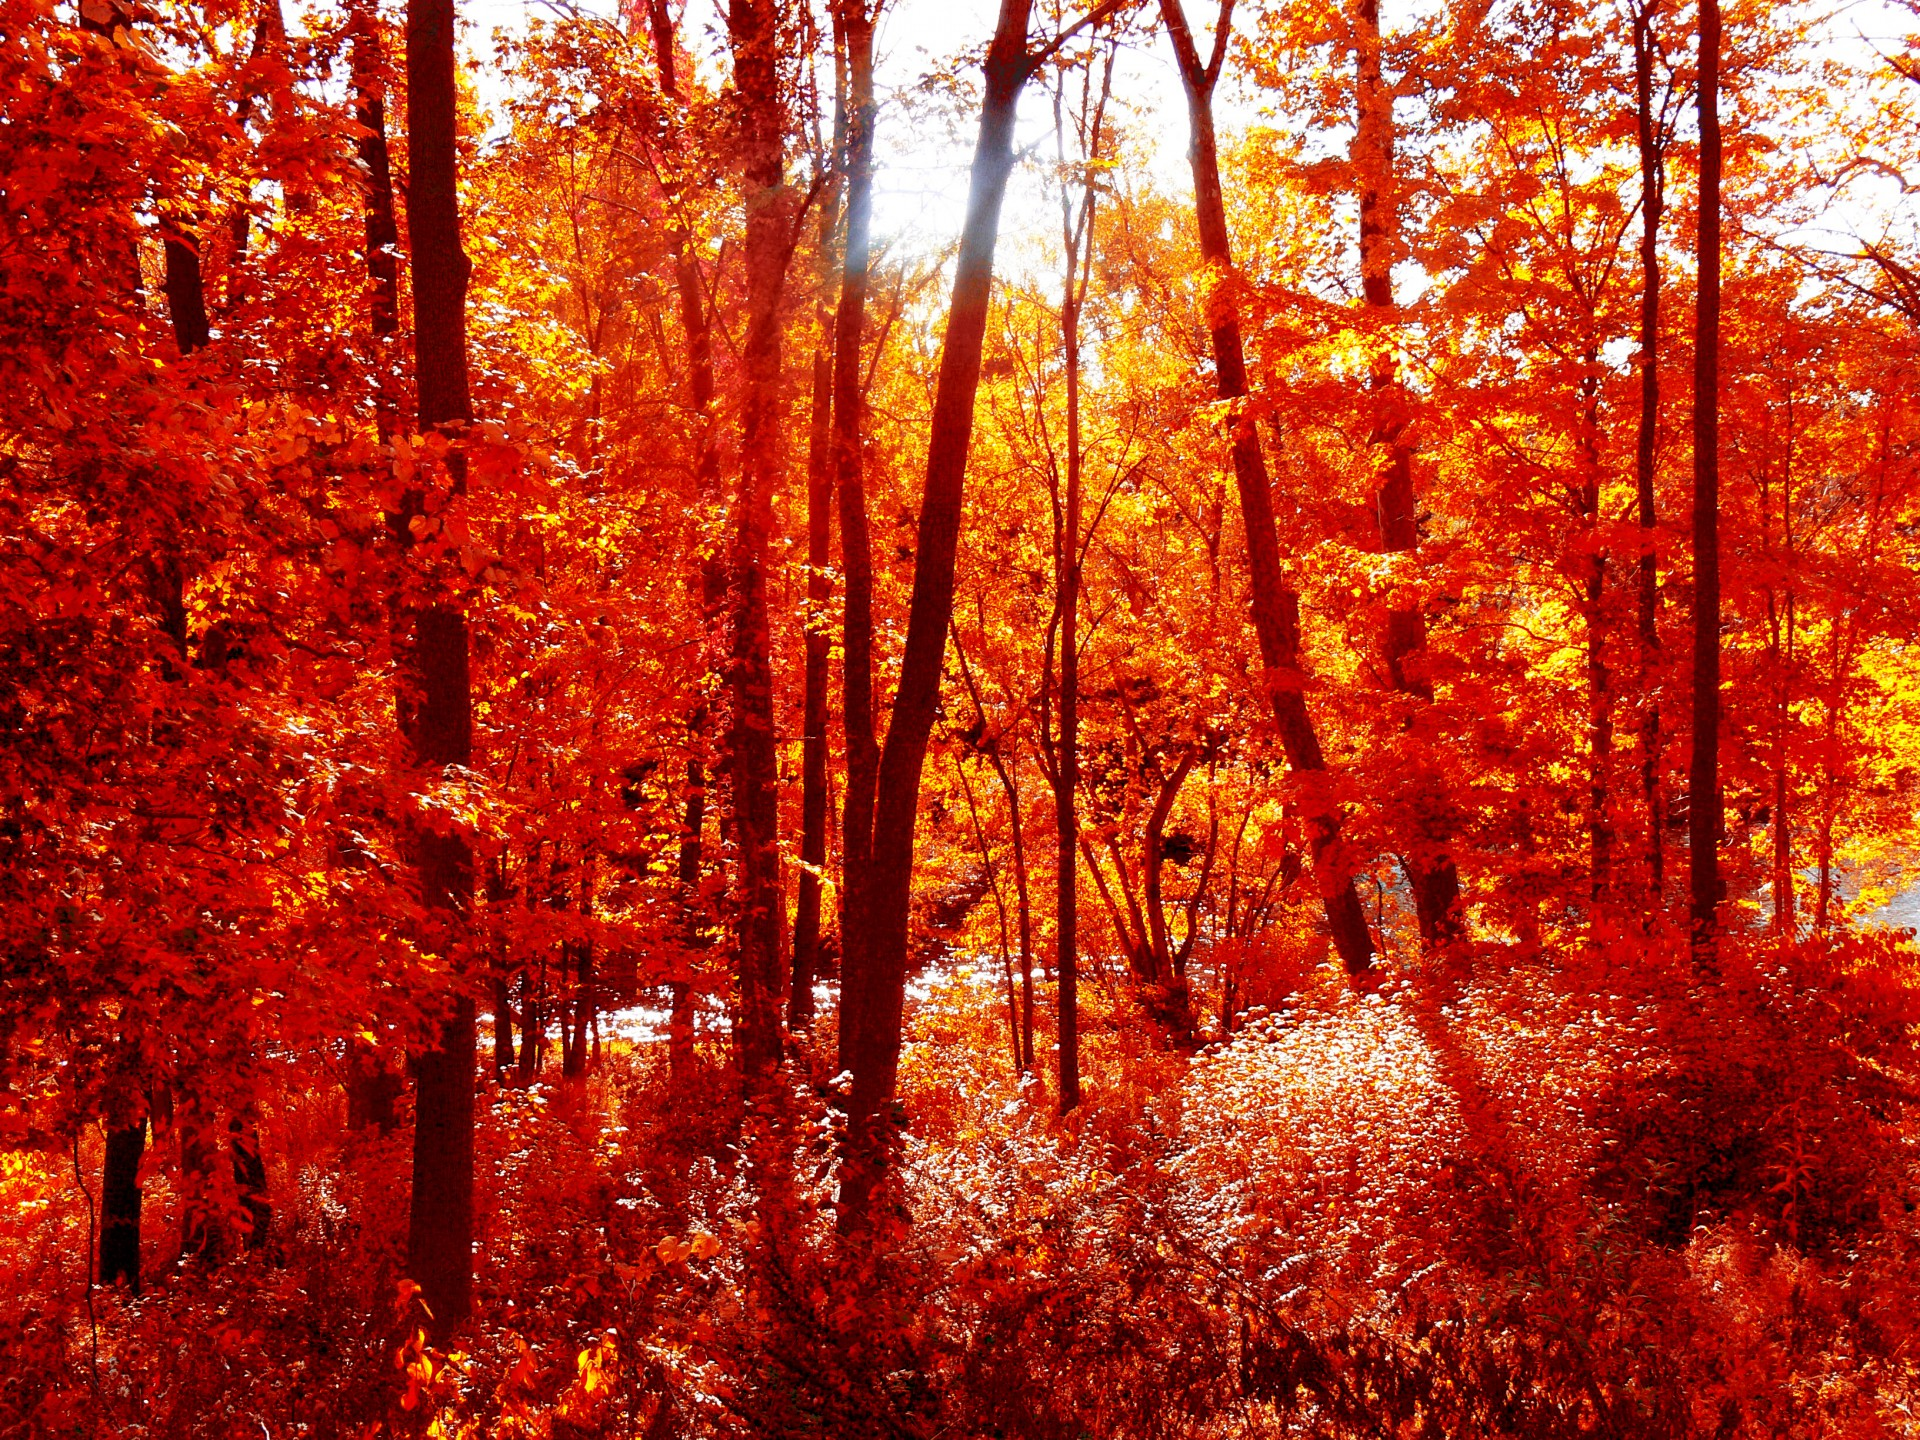 Fall Leaves Hd Wallpapers 1080p Fall Forest Leaves Free Stock Photo Public Domain Pictures